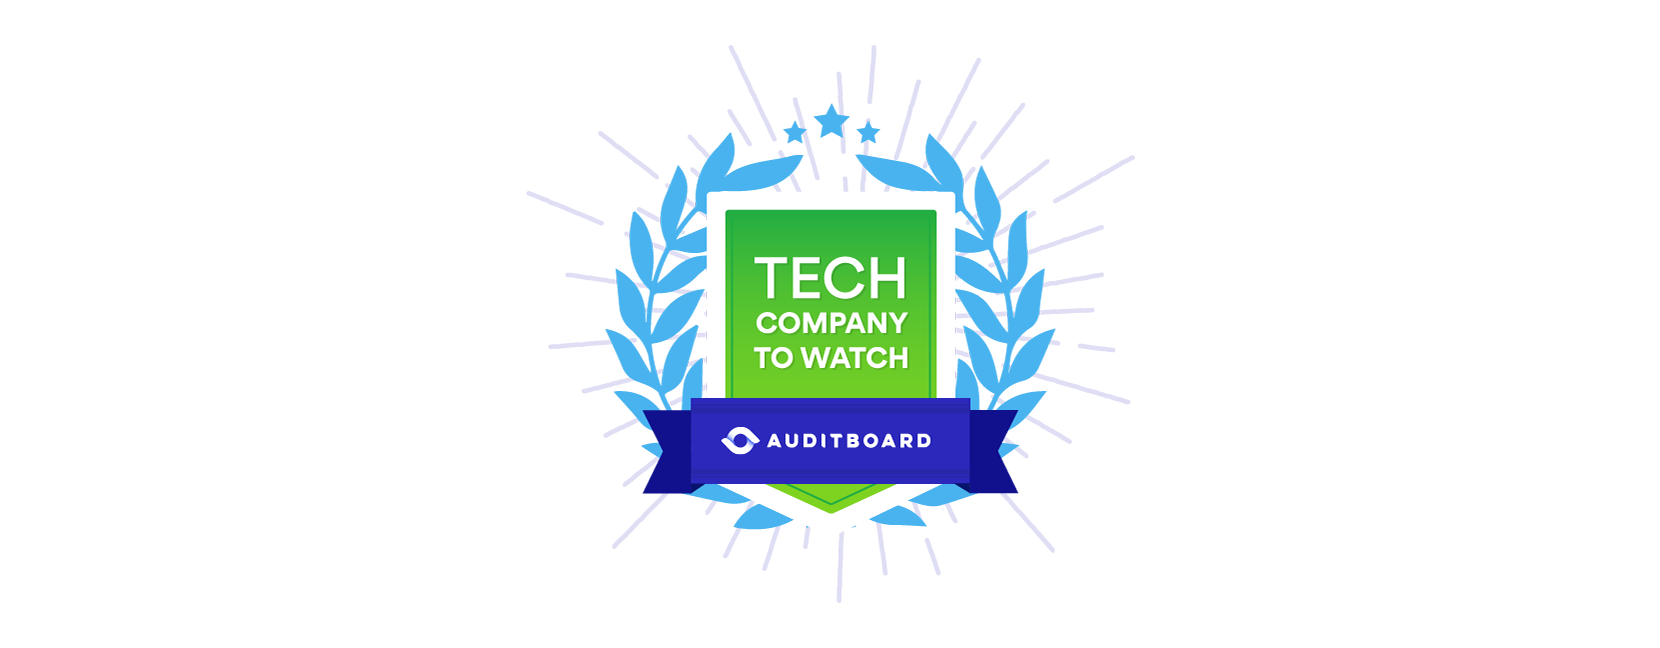 CFO Magazine Names AuditBoard a 2019 Tech Company to Watch